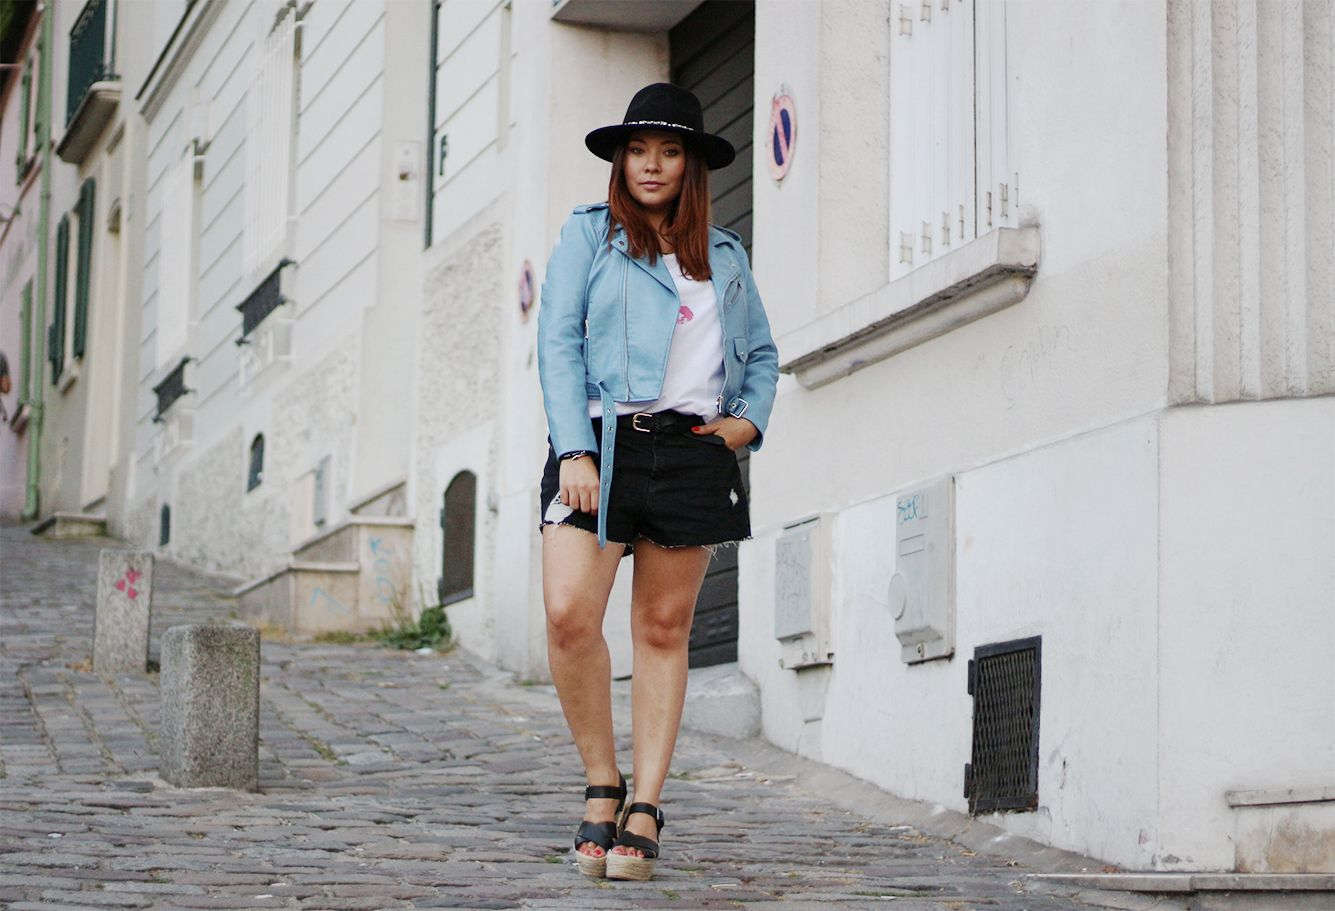 montmartre, panama, chapeau asos, asos, sheinside, t shirt bouche yeux, perfecto bleu zara, zara, perfecto simili cuir, no leather, pull and bear, sac franges, chaussures compensées, panama asos